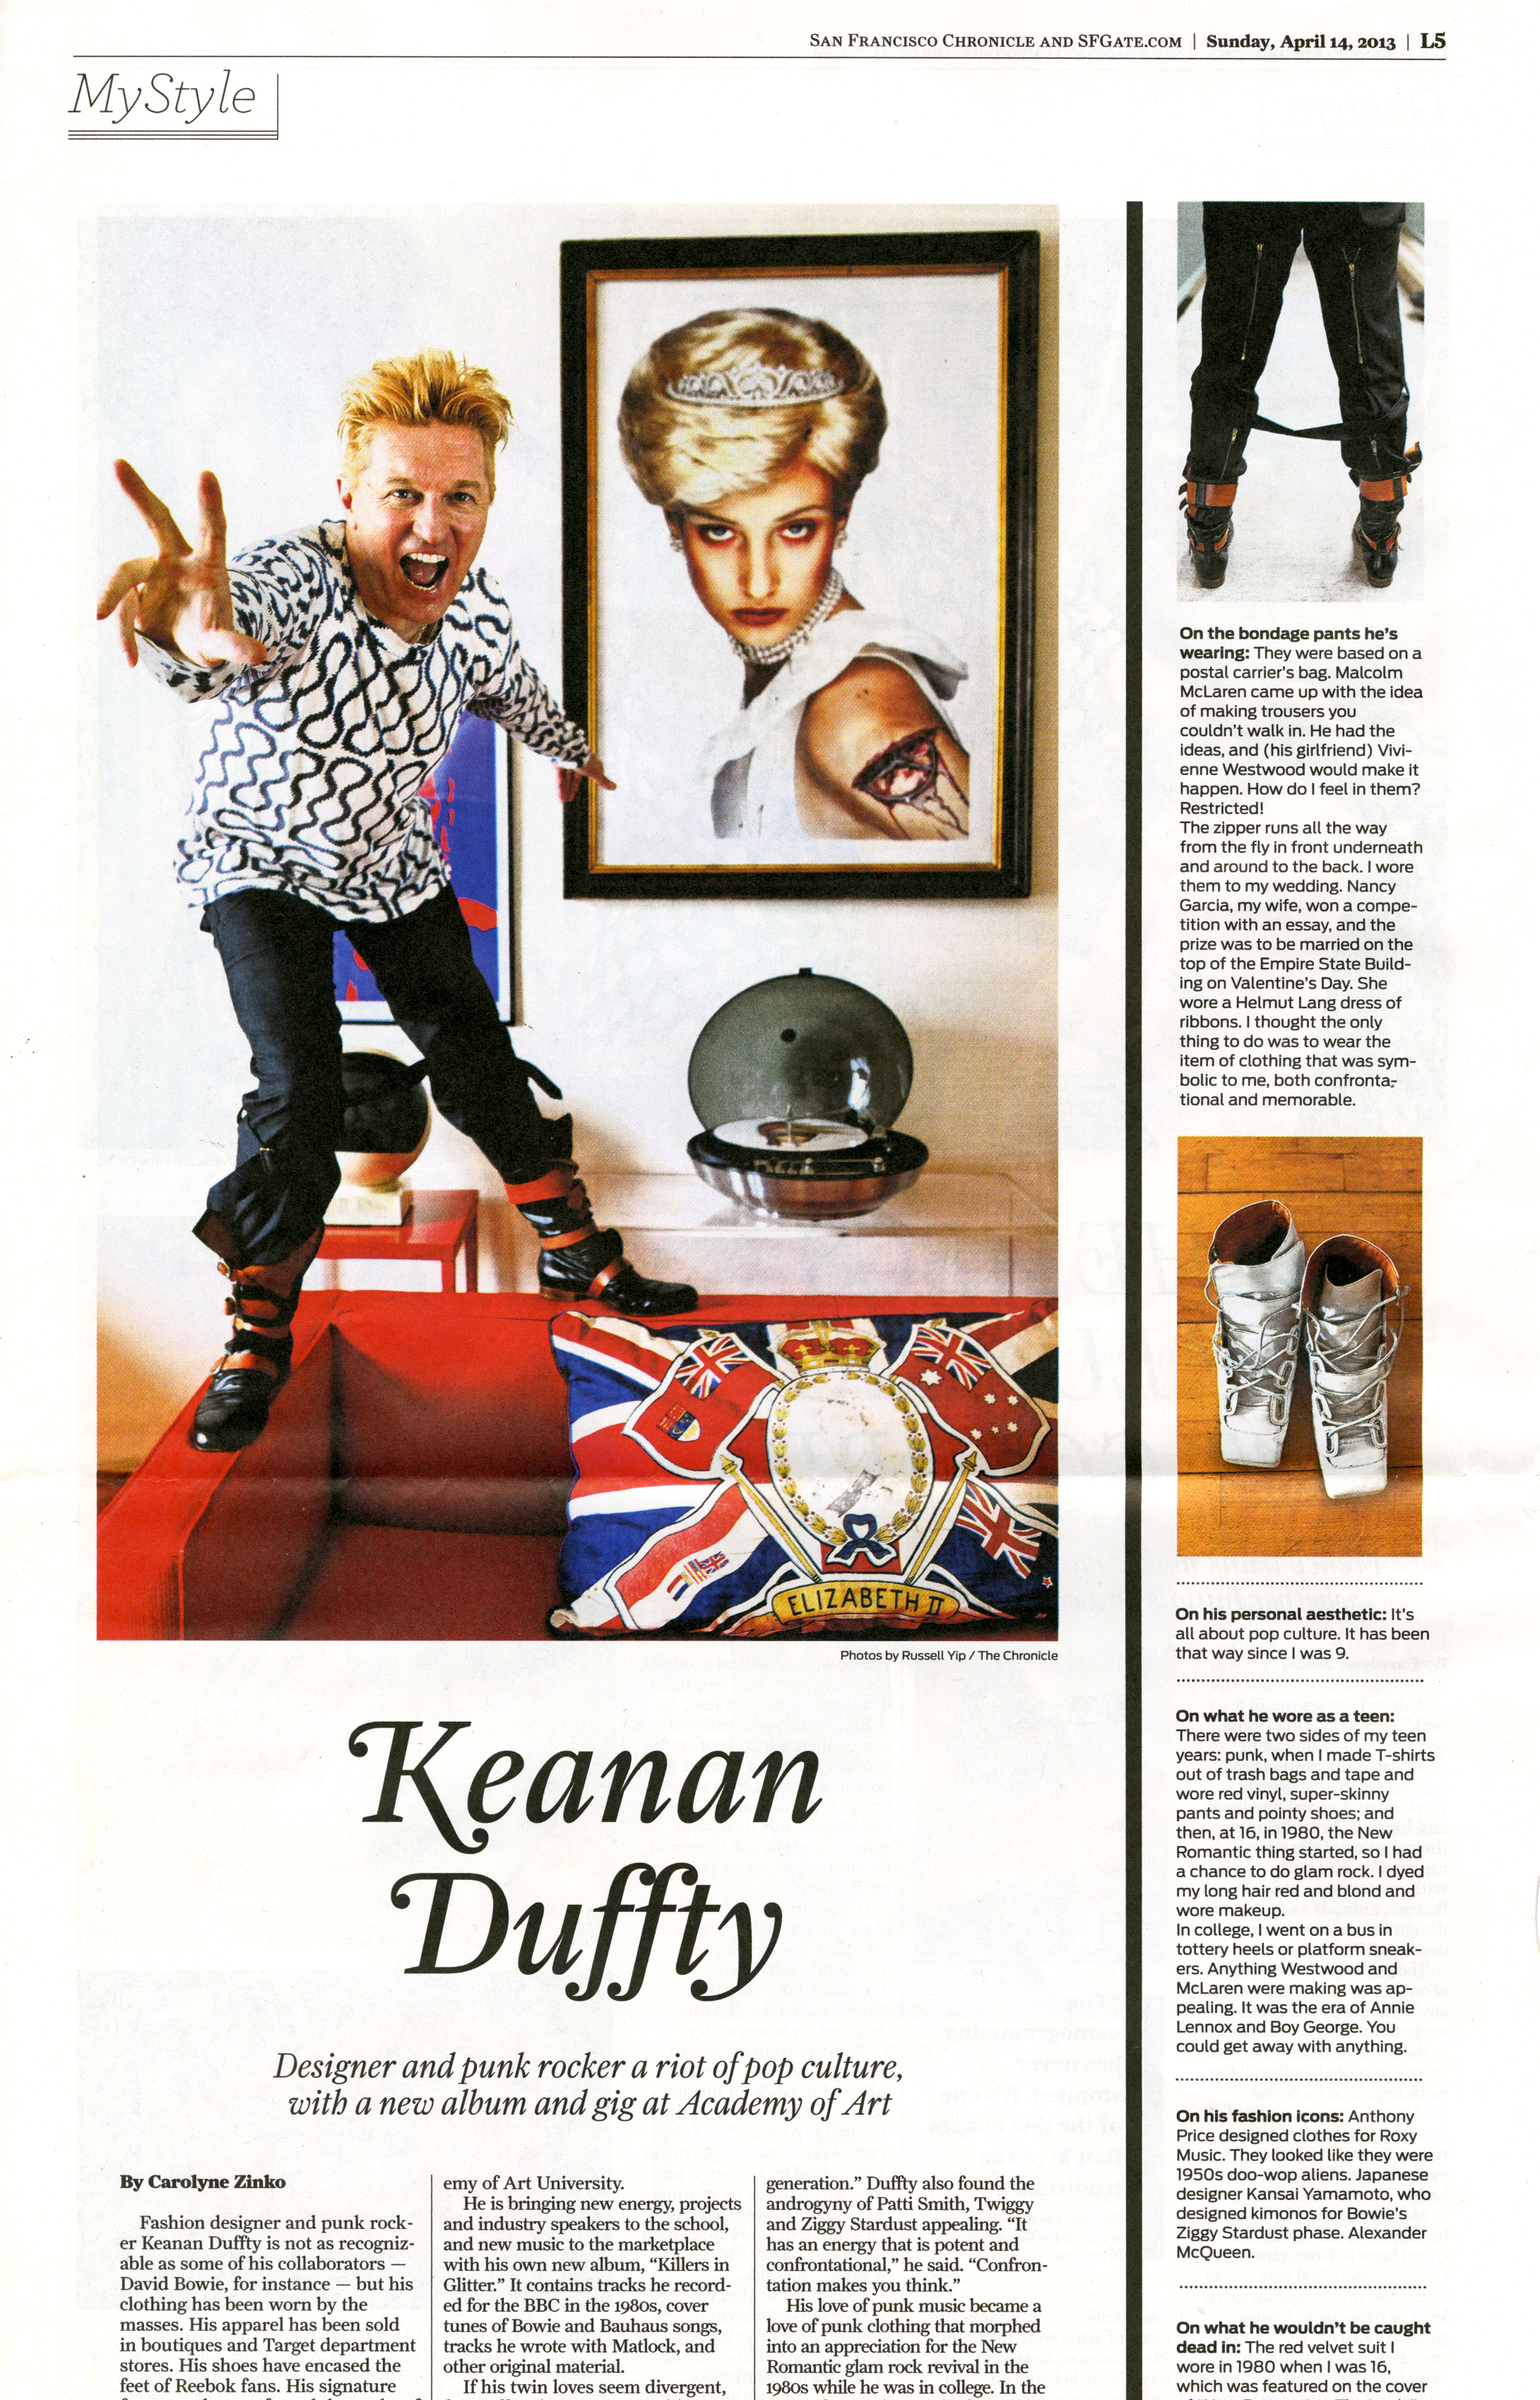 Keanan Duffty Senior Director Of Fashion Merchandising Featured In The San Francisco Chronicle